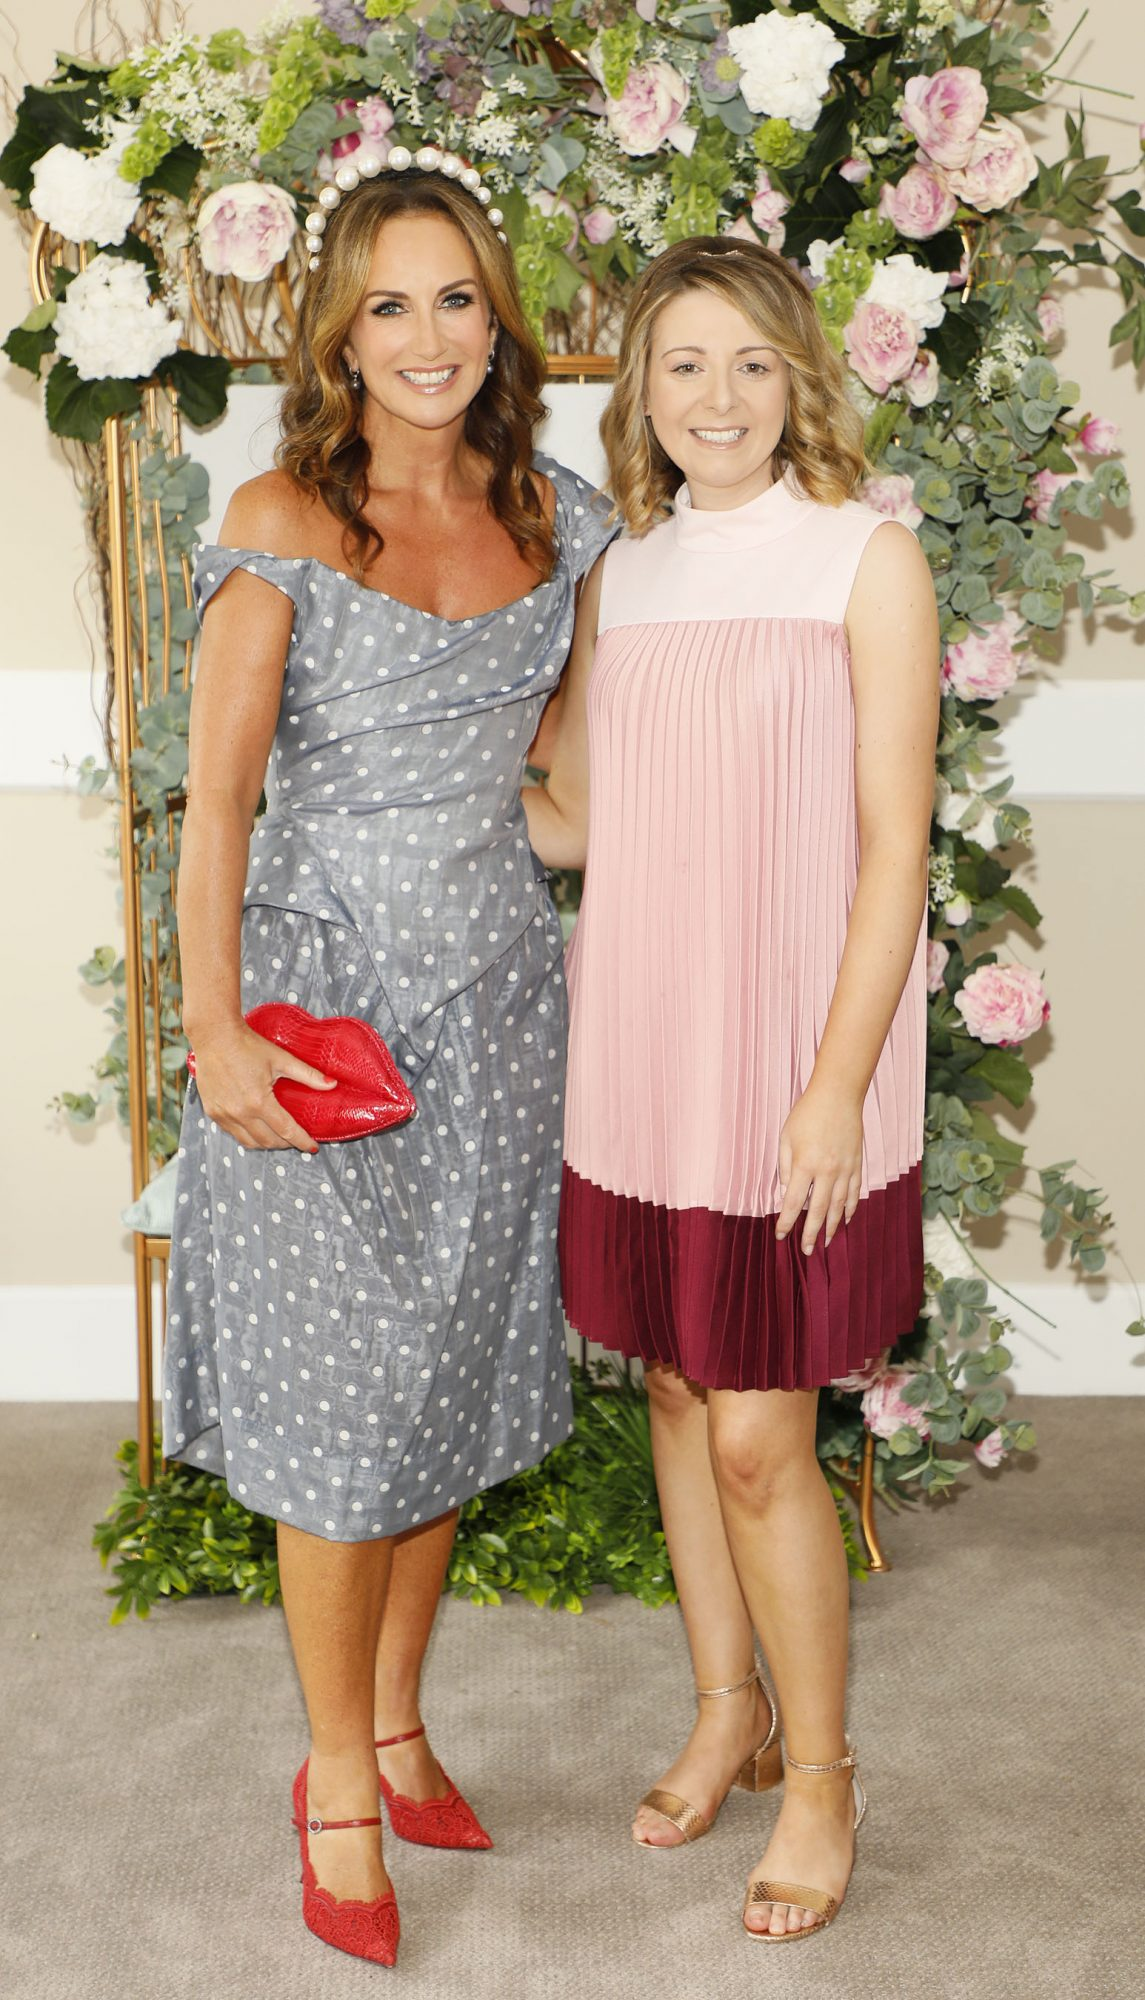 Lorraine Keane and Catherine O'Toole at the Dundrum Town Centre Ladies' Day at the Dublin Horse Show in the RDS. Photo: Kieran Harnett